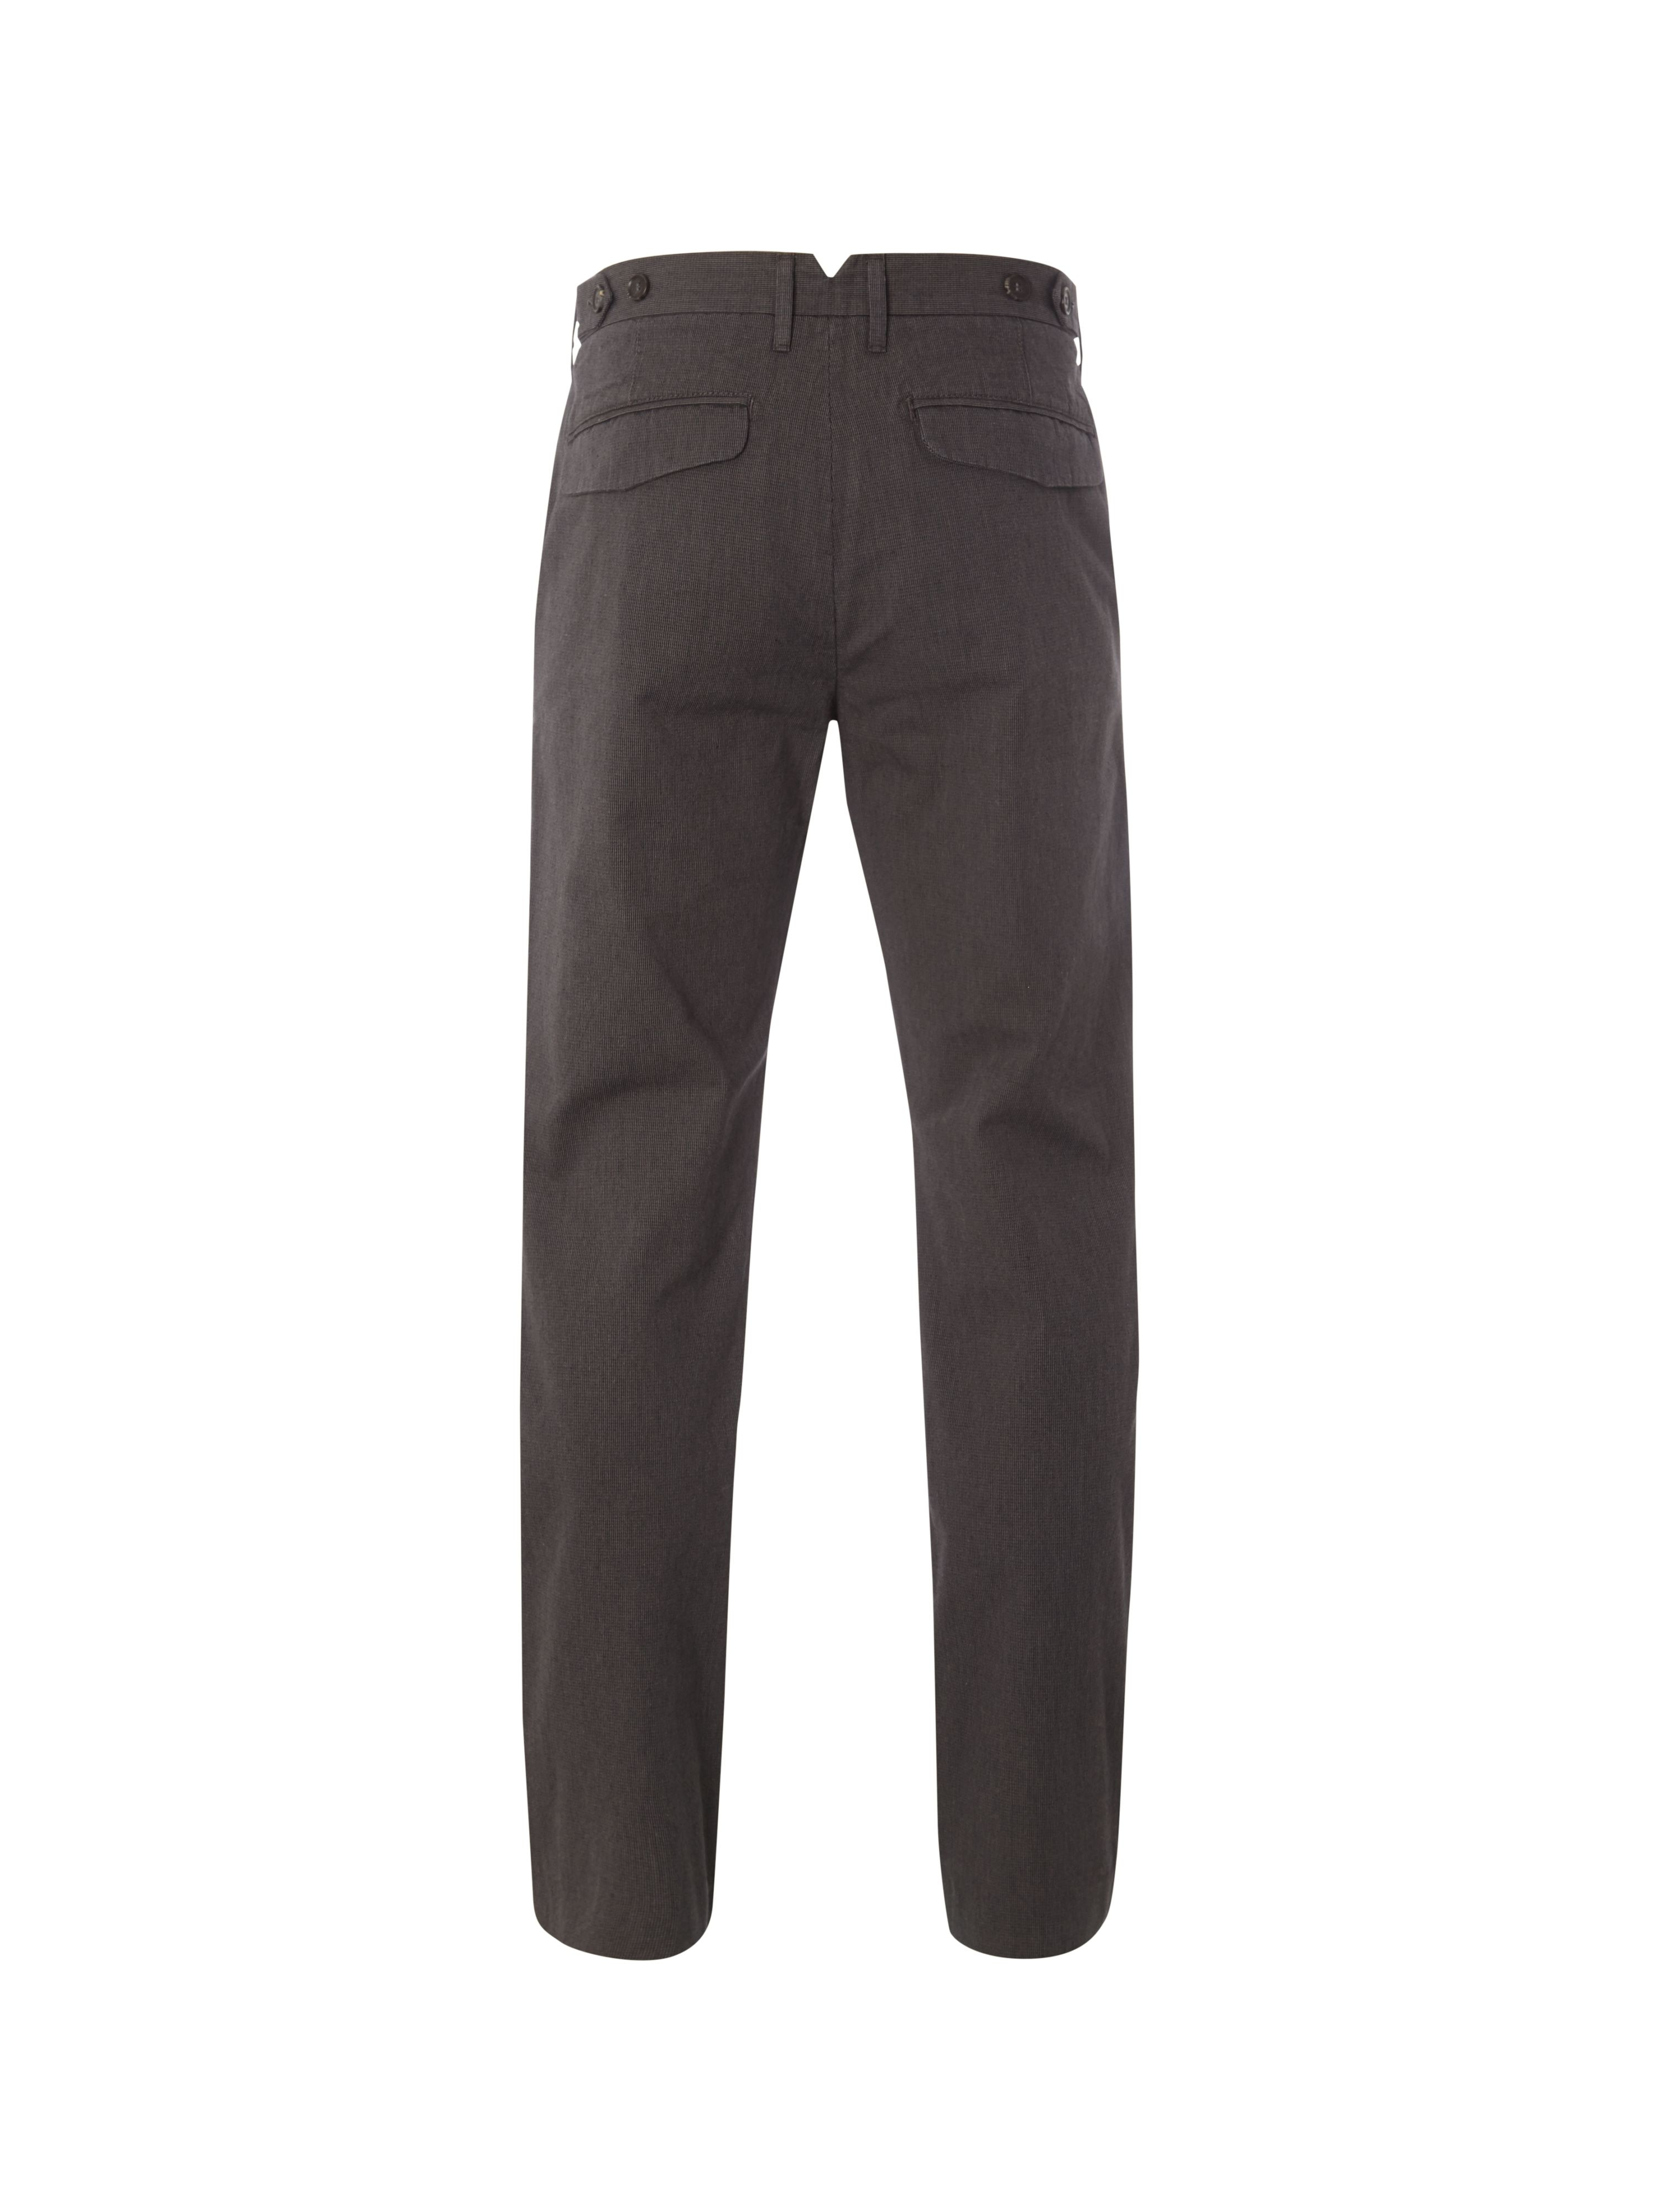 Hillside trouser